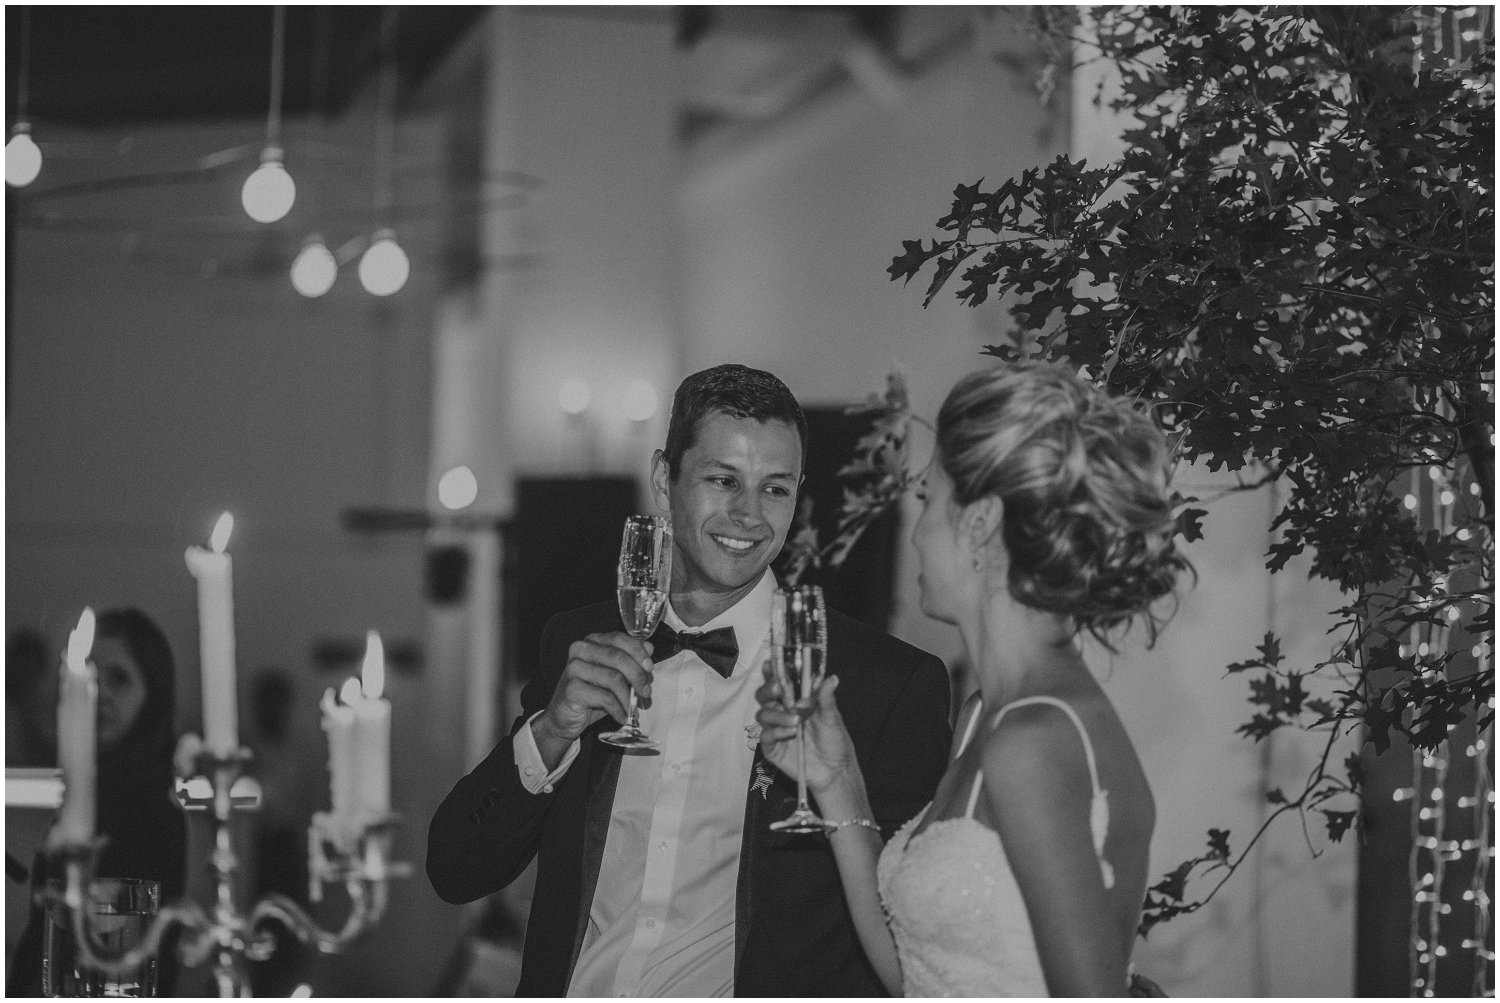 Top Artistic Creative Documentary Wedding Photographer Cape Town South Africa Rue Kruger_0168.jpg